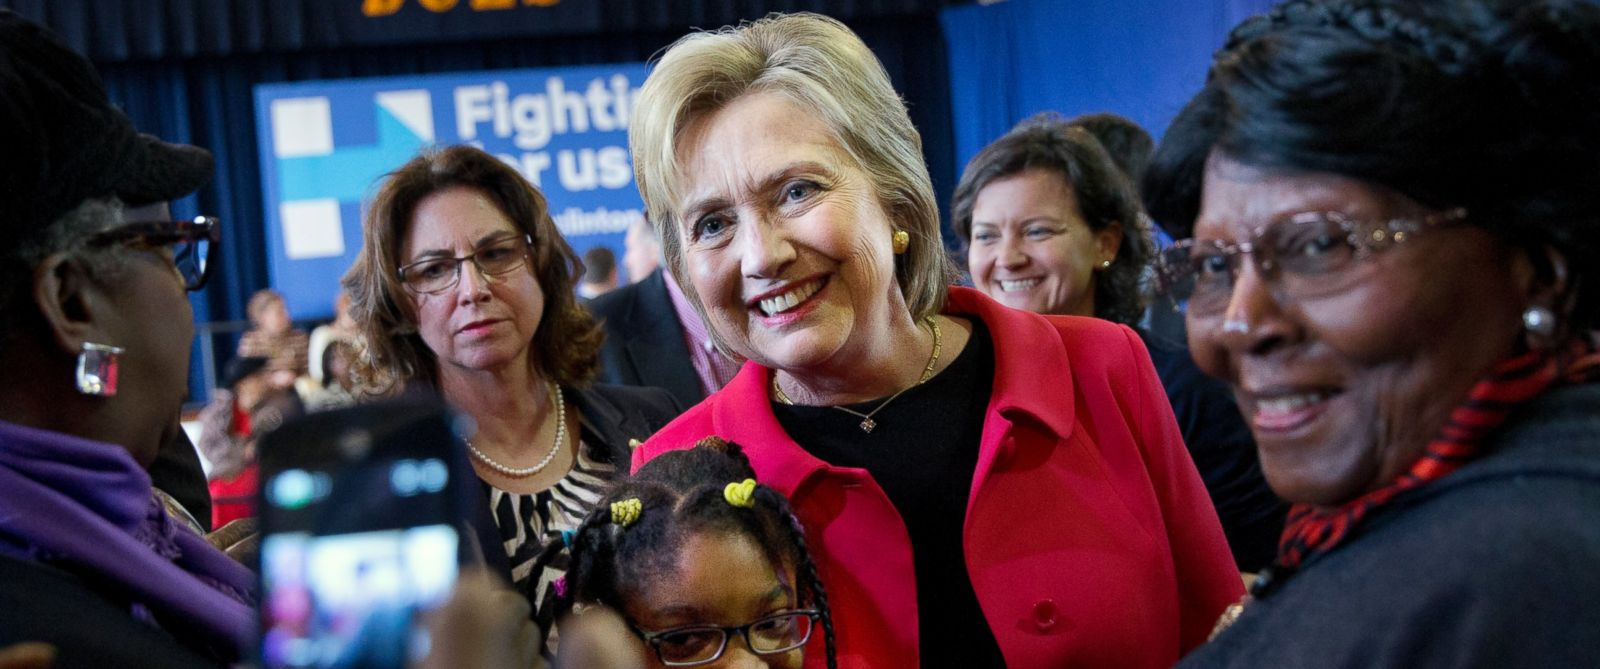 PHOTO: Democratic presidential candidate Hillary Clinton takes a photograph with Jordan Daniels, 11, of Denmark, S.C., during a town hall meeting at Denmark Olar Elementary School in Denmark, S.C., Friday Feb. 12, 2016.